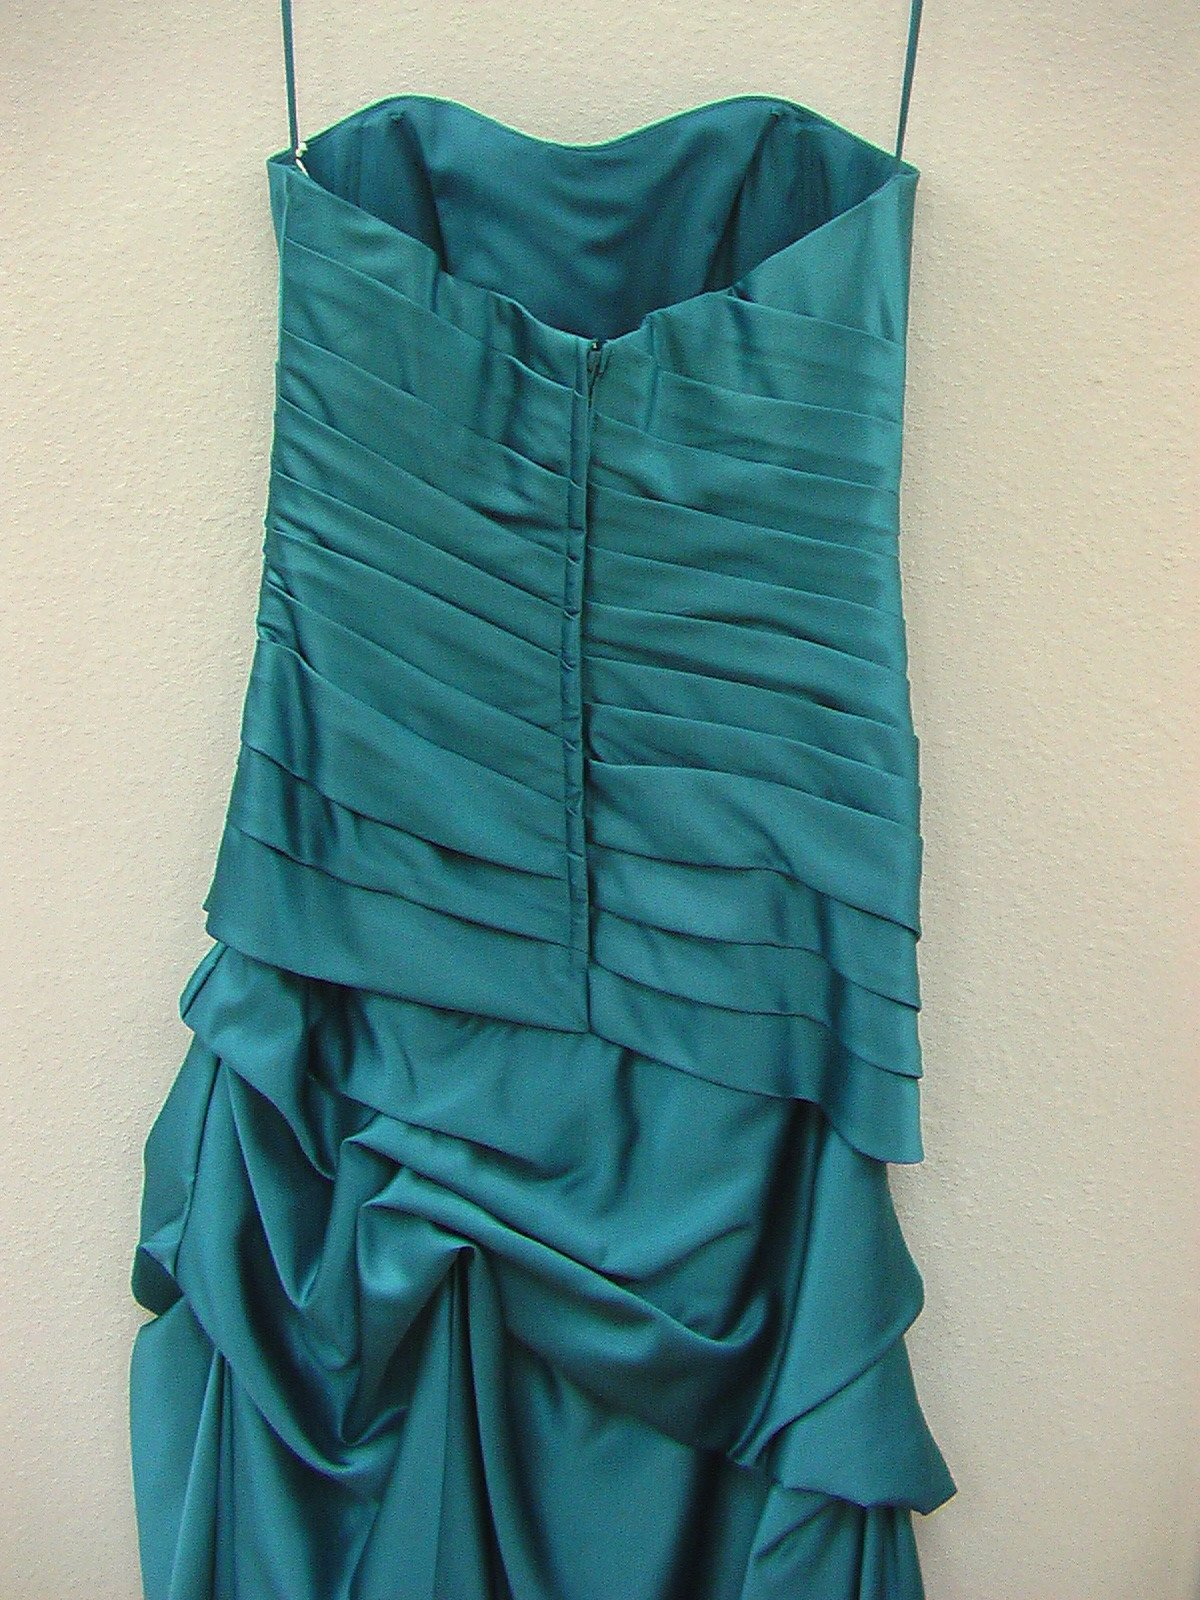 Allure 1282 Oasis Size 12 In Stock Bridesmaid Dress - Tom's Bridal